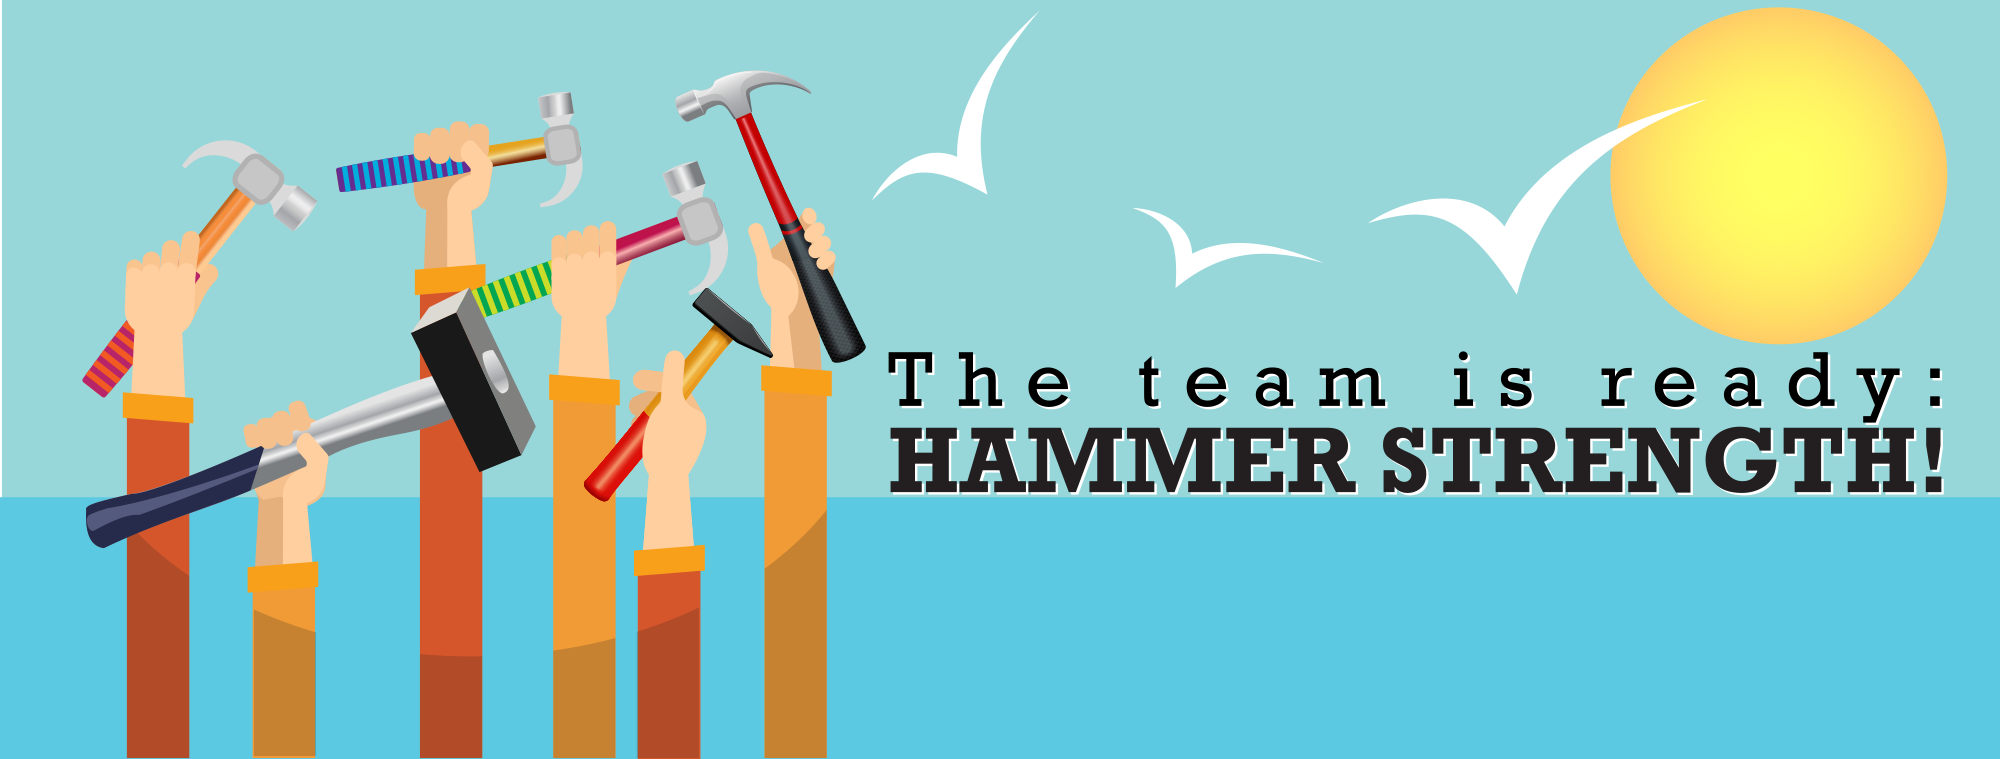 Header design for Hammer Strength FaceBook page